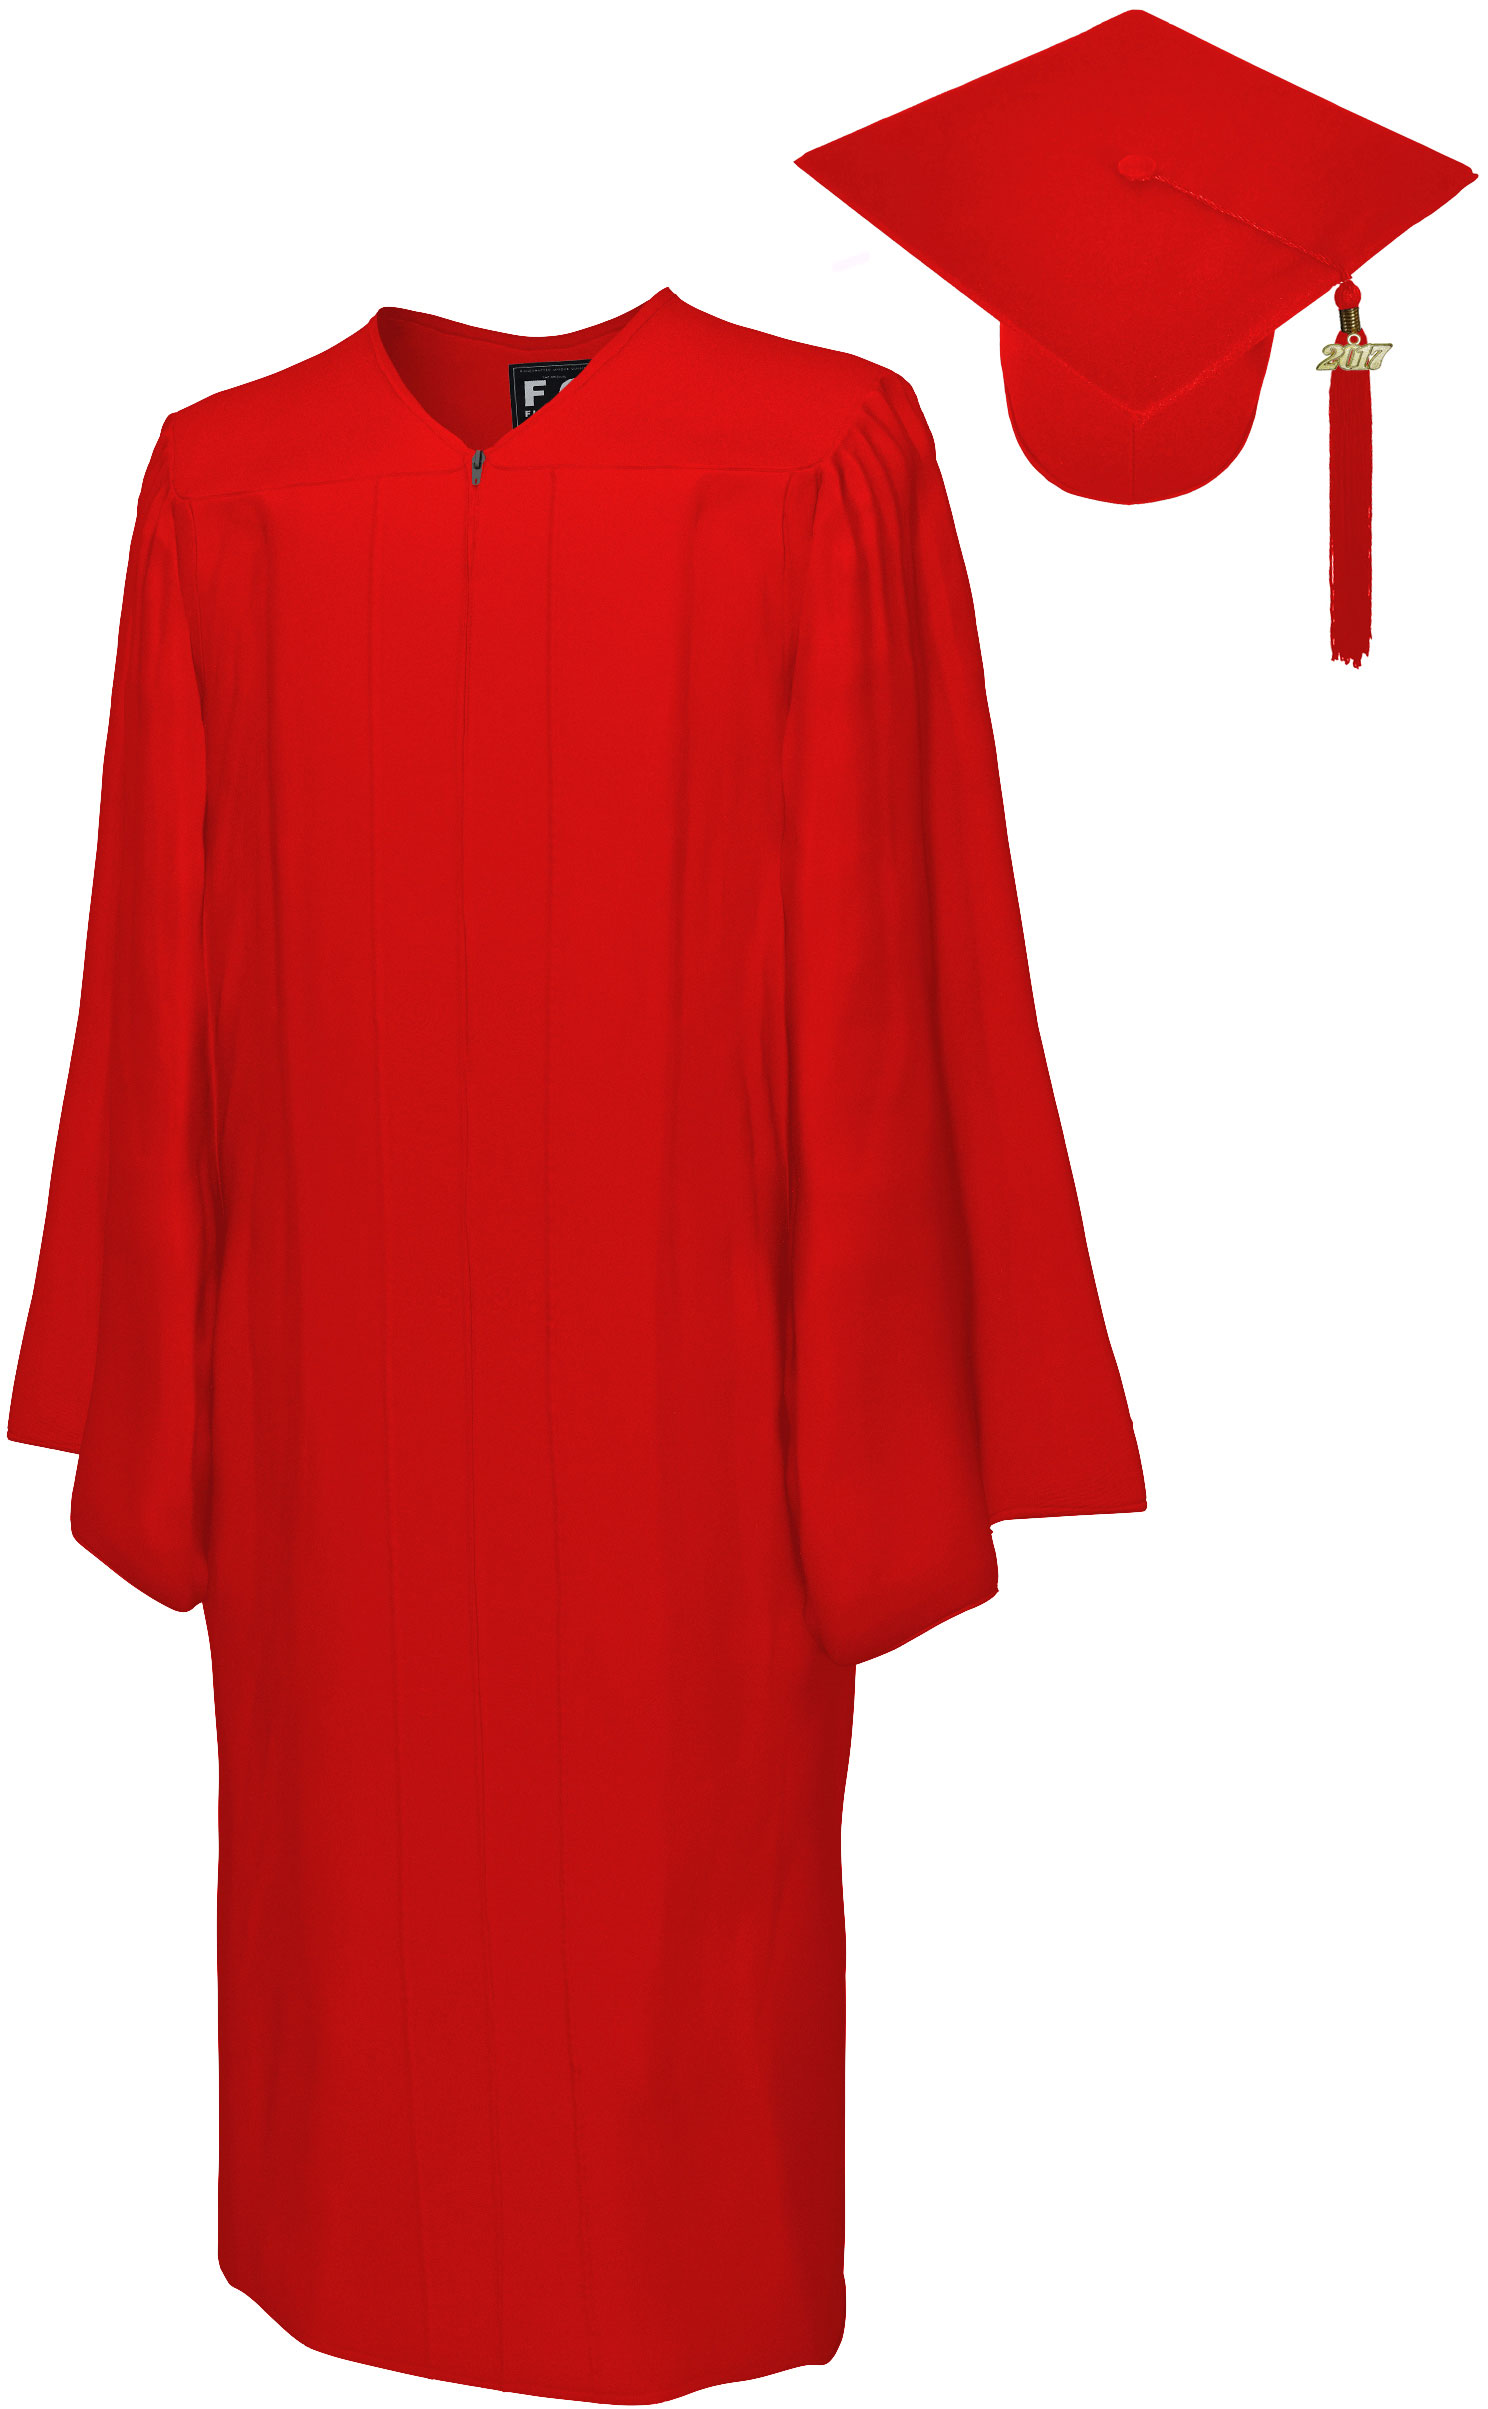 GO GREEN RED BACHELOR GRADUATION CAP & GOWN SET-rs4251465601257